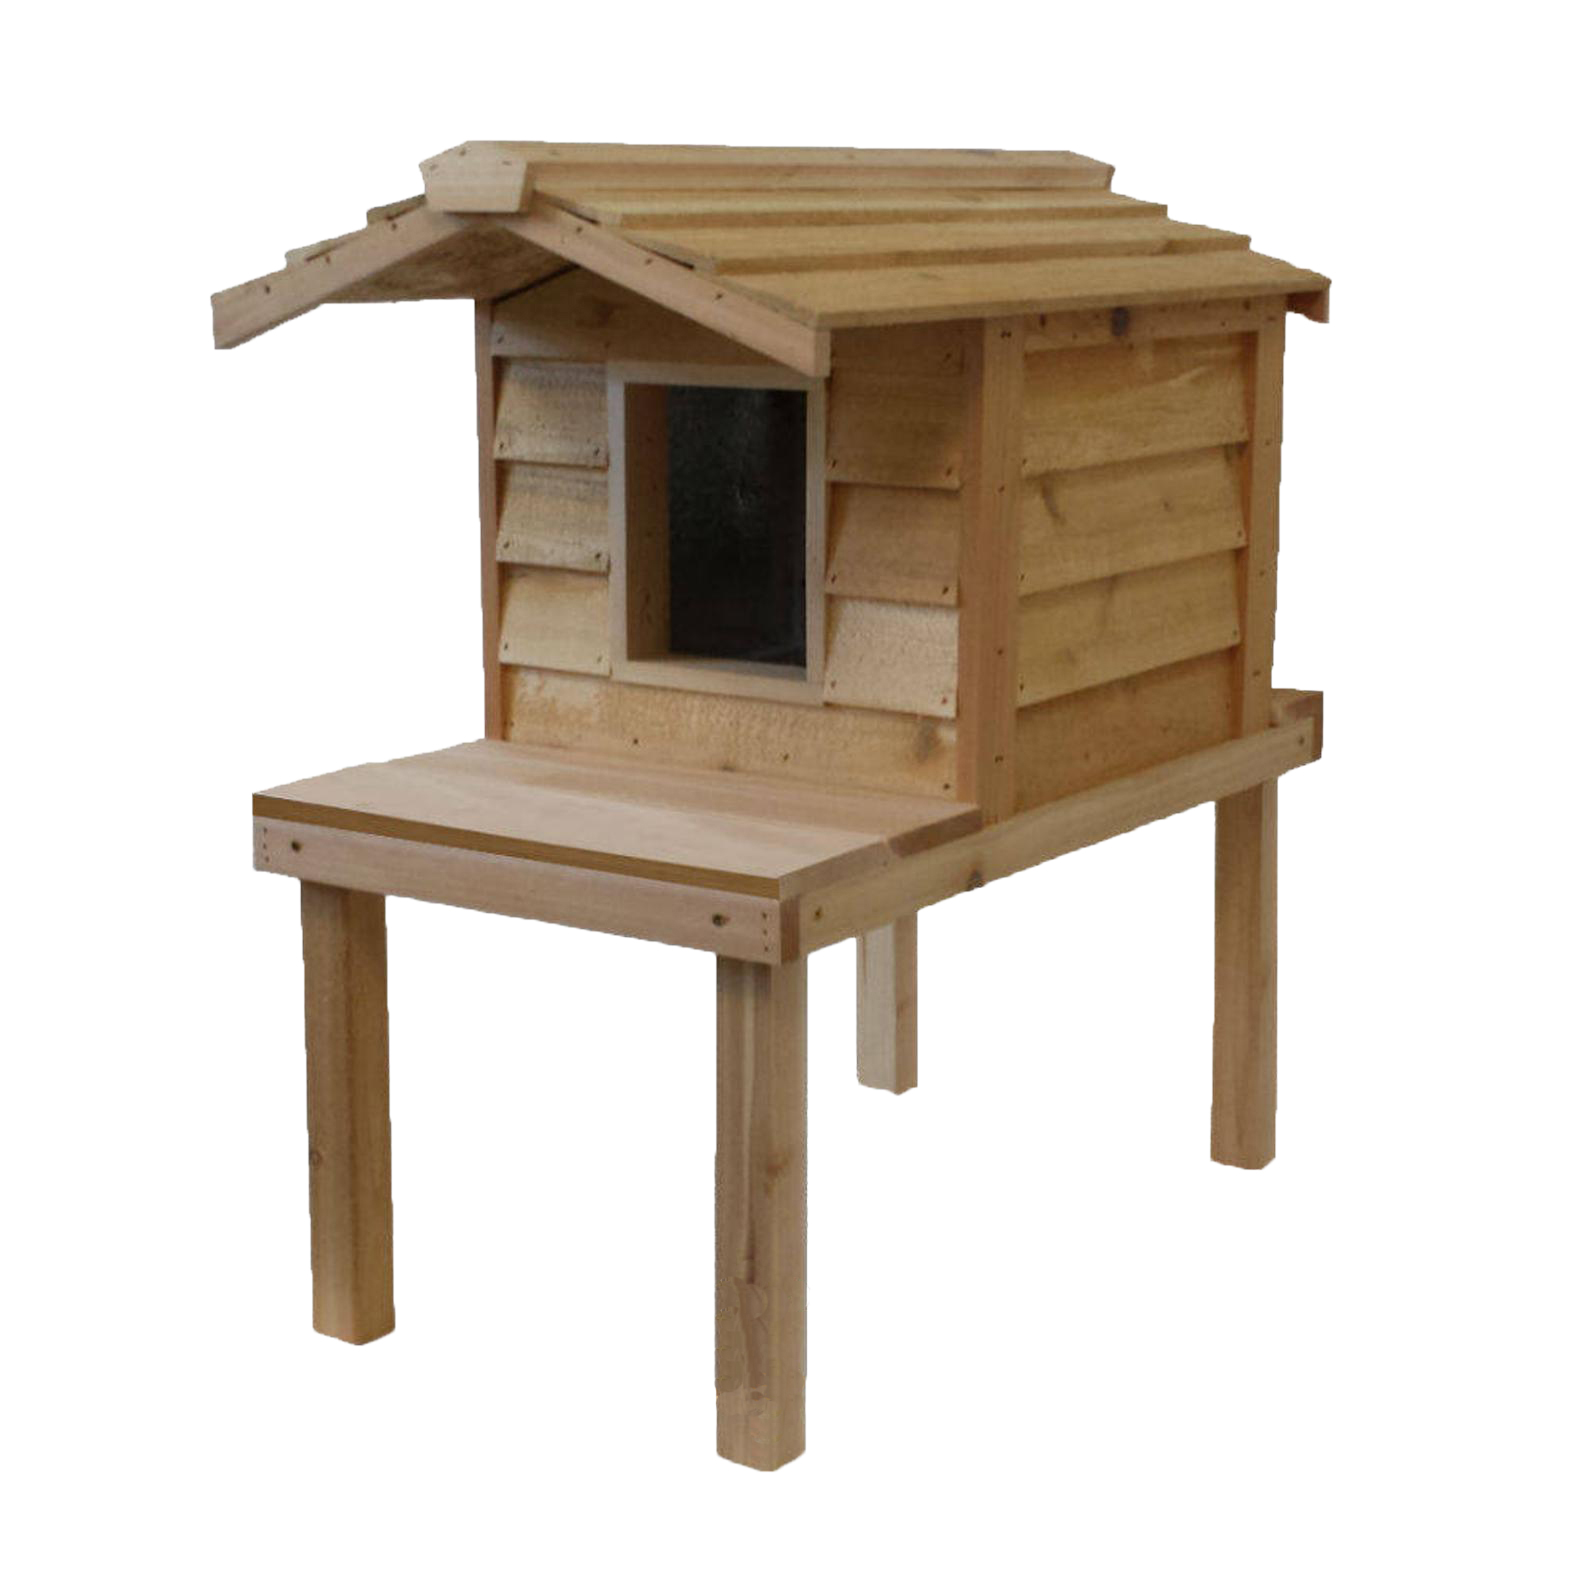 small-insulated-cat-house-with-platform-and-extended-roof